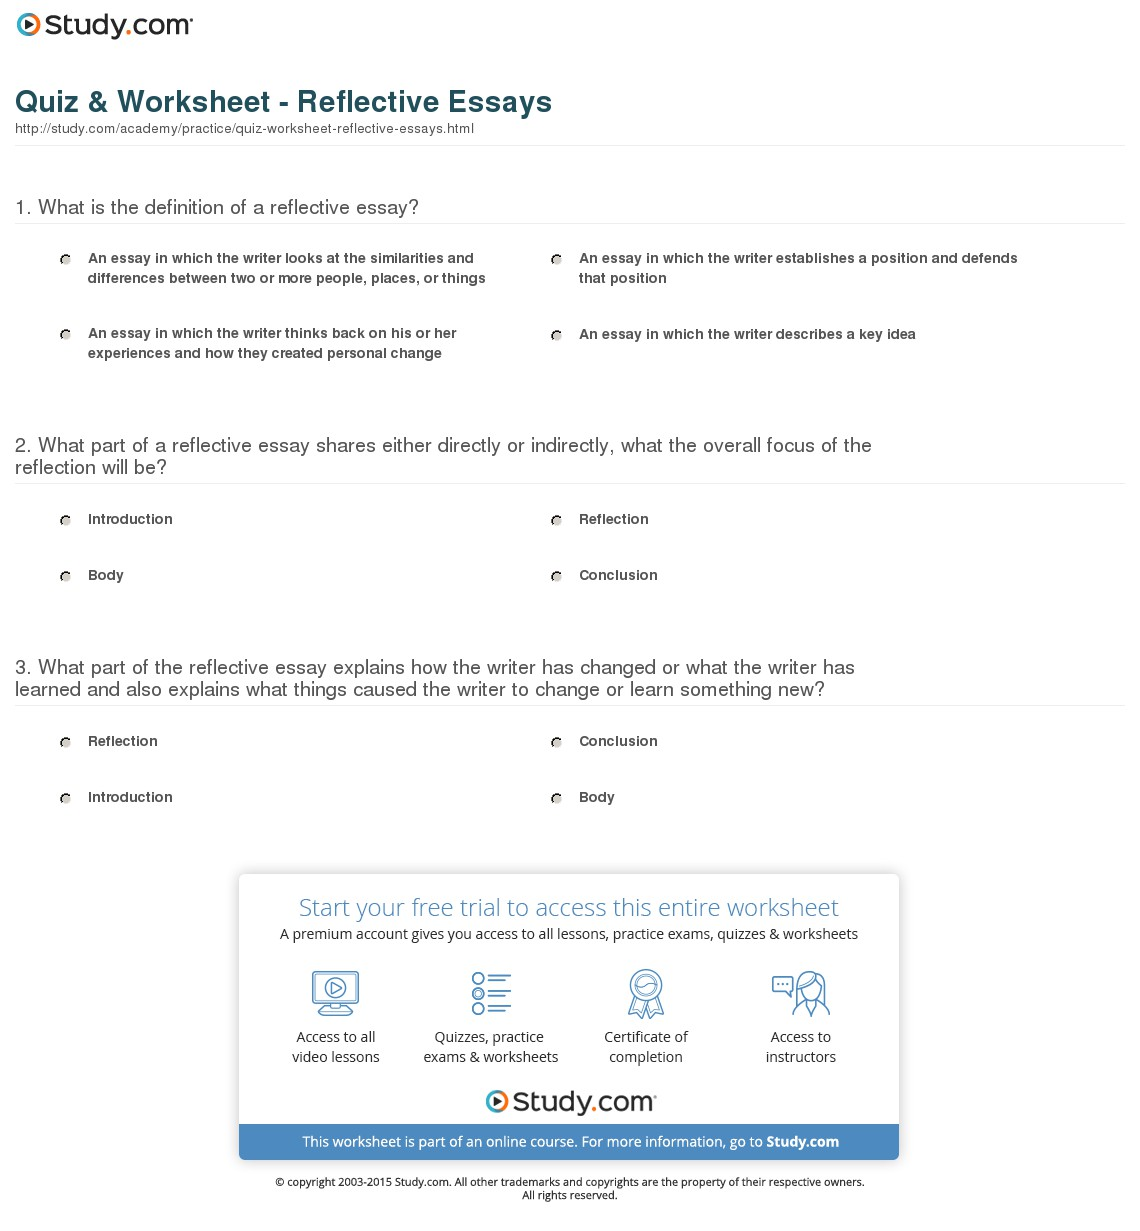 008 Essay Example Quiz Worksheet Reflective Magnificent Essays By Manzoor Mirza Pdf Analysis Definition Writing Style Full